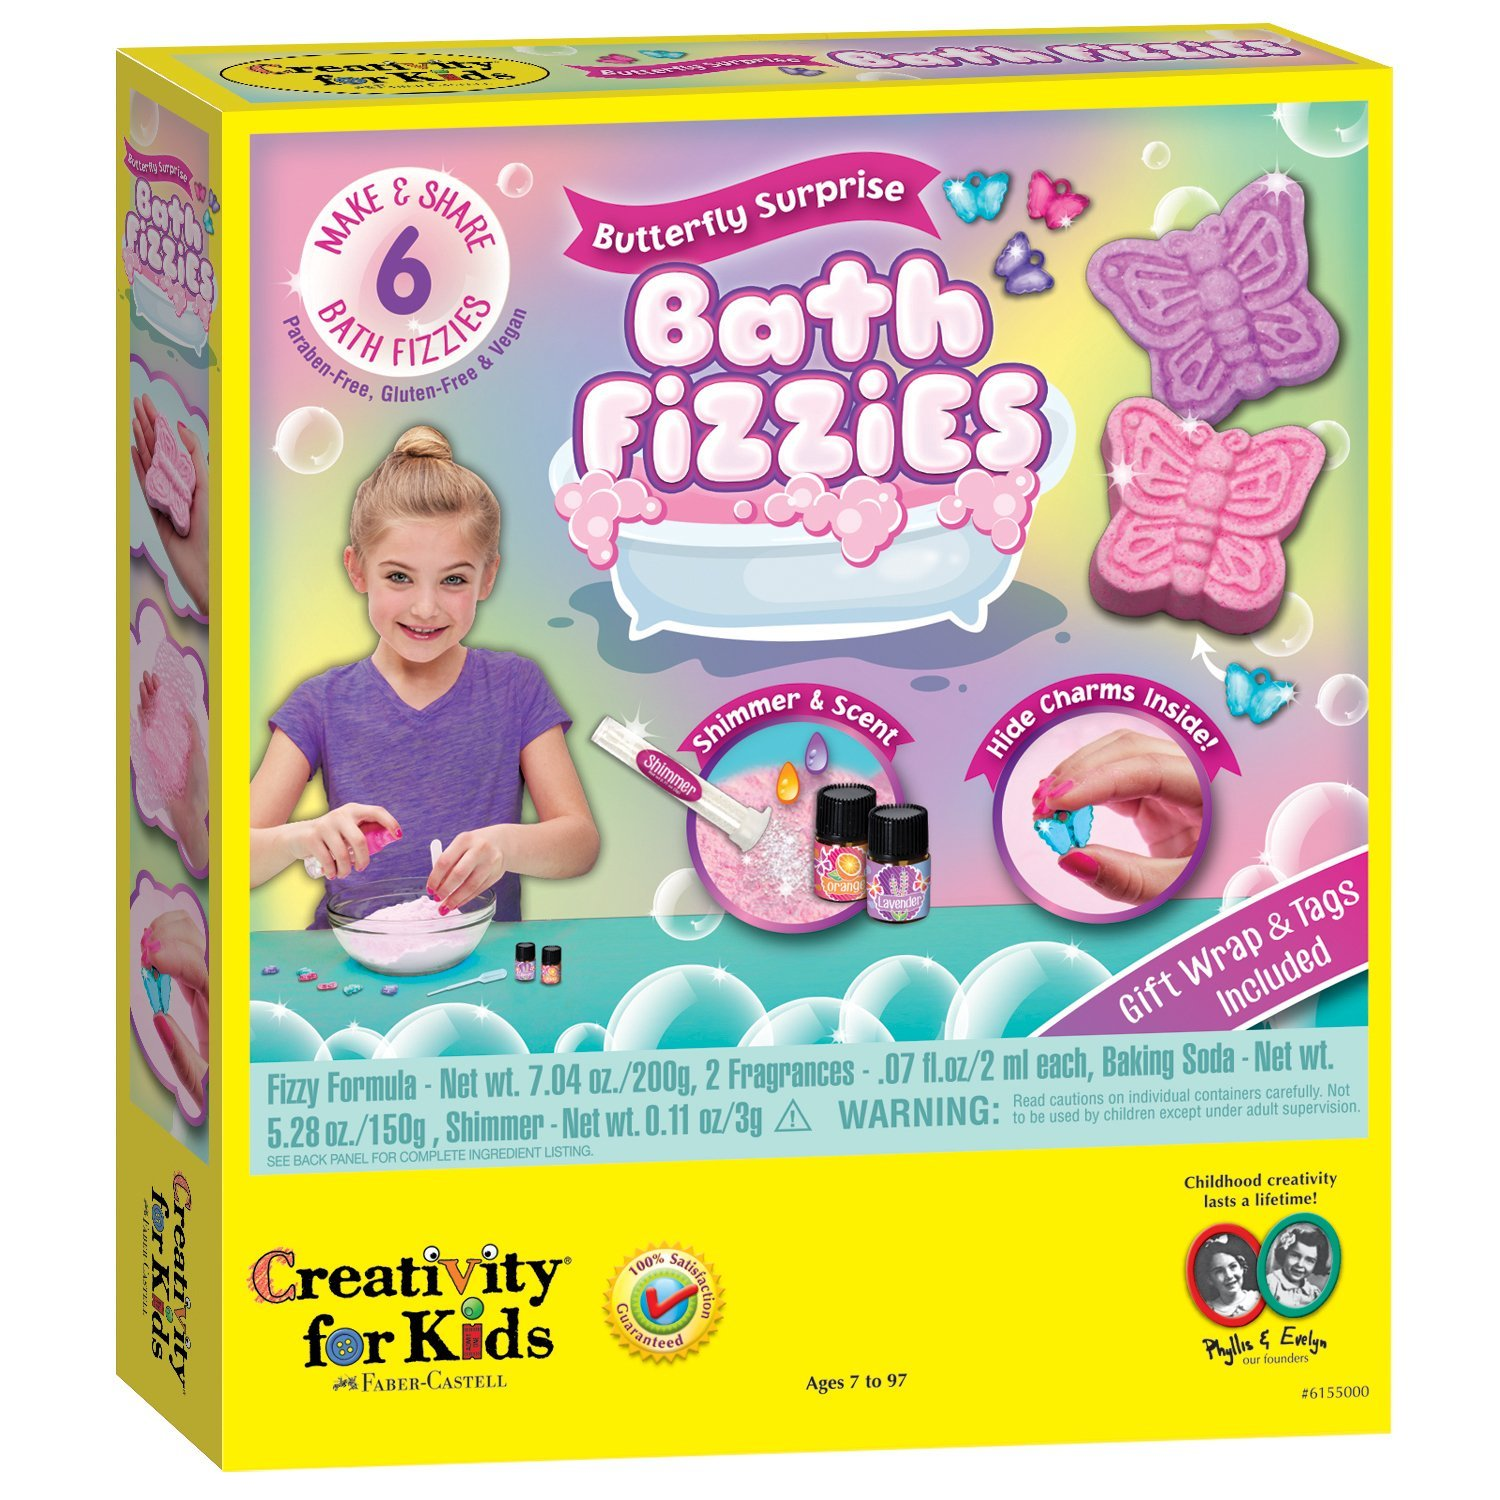 Creativity for Kids DIY bath fizzies craft kit: Great last-minute holiday gift